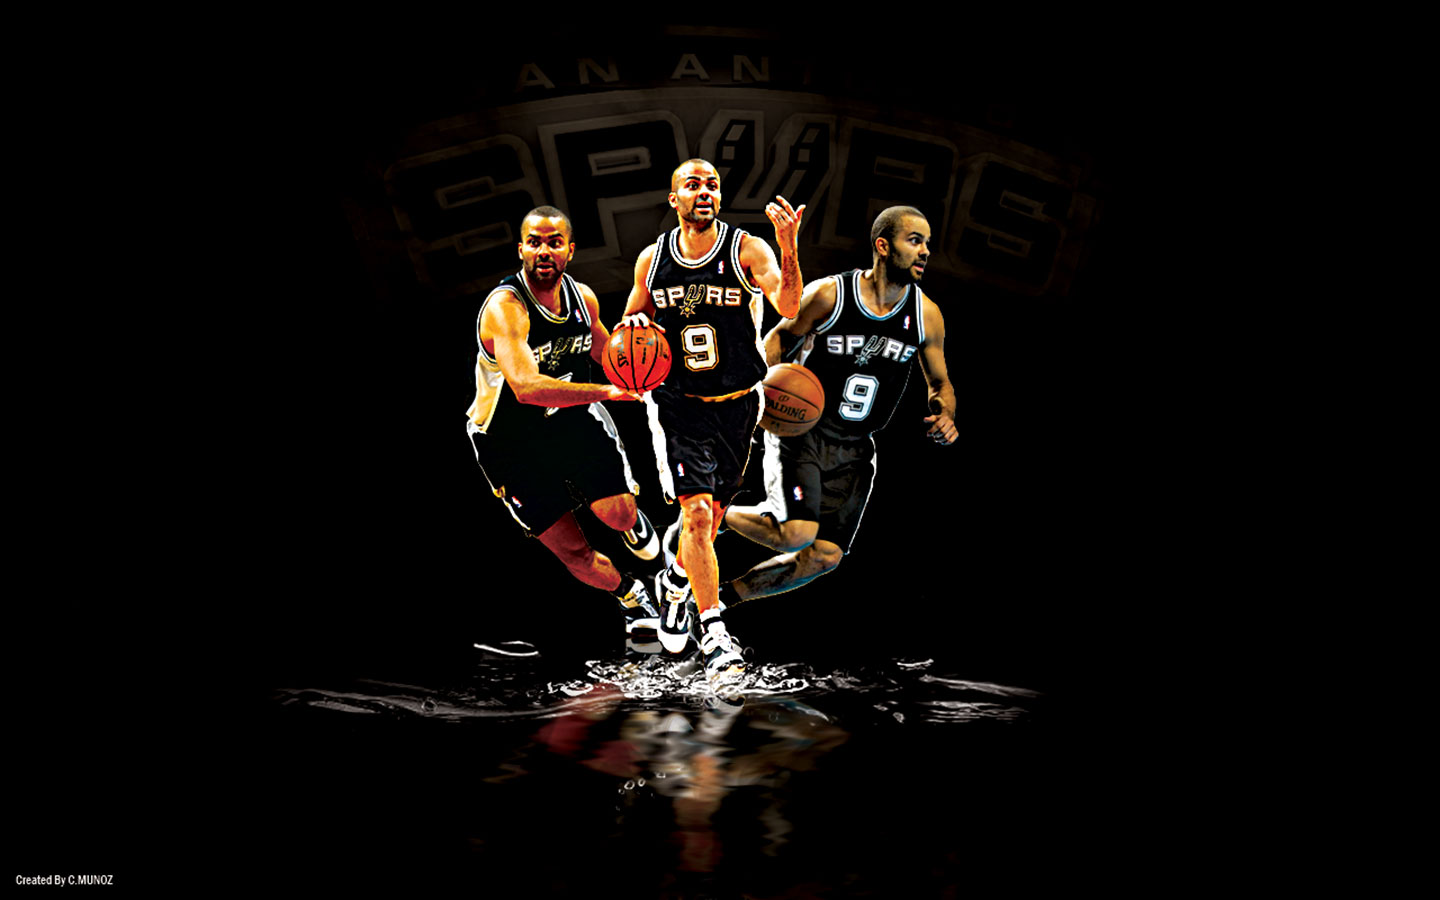 San Antonio Spurs wallpapers San Antonio Spurs background   Page 2 1440x900